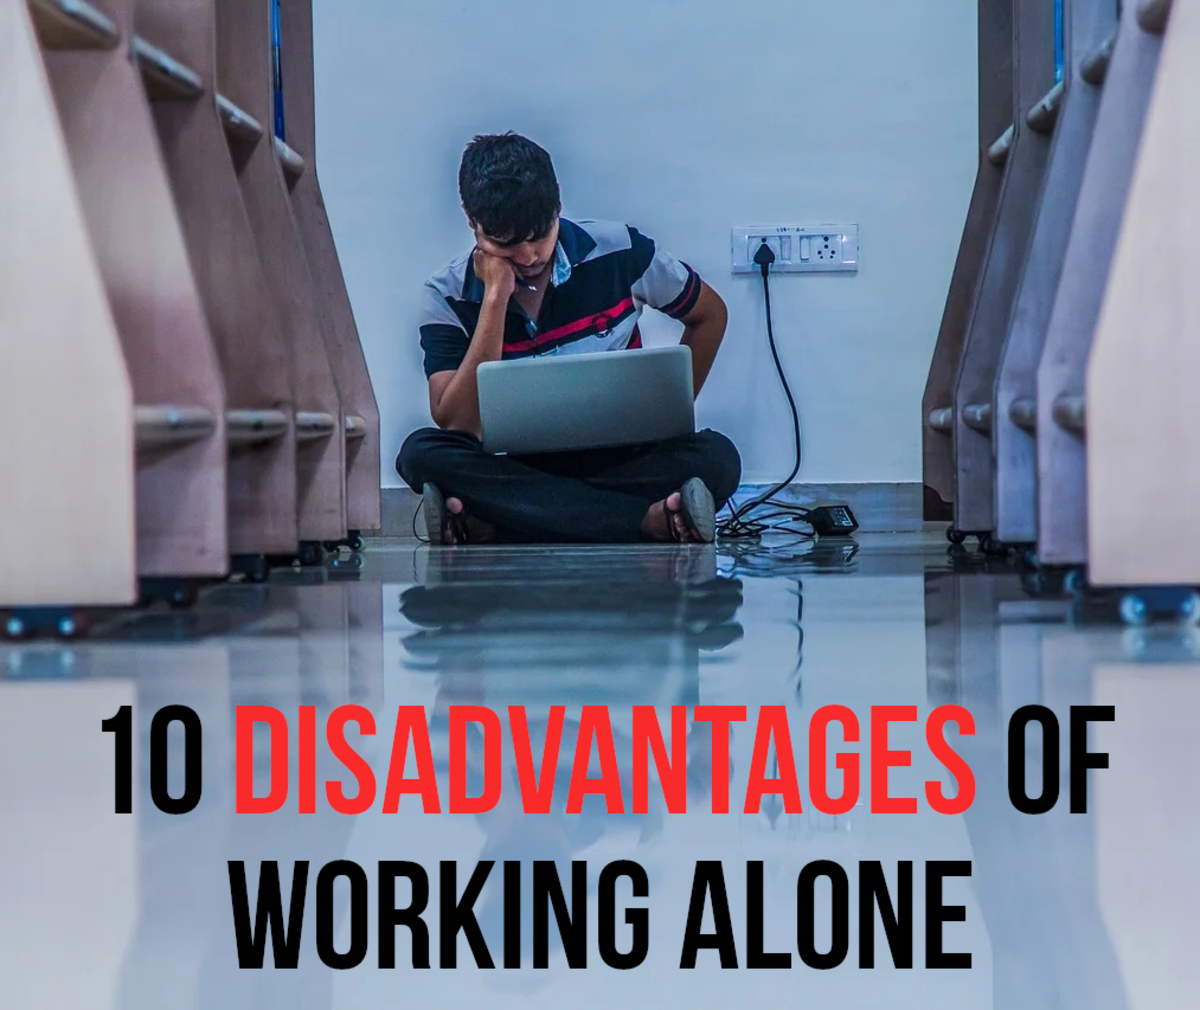 10 Disadvantages of Working Alone